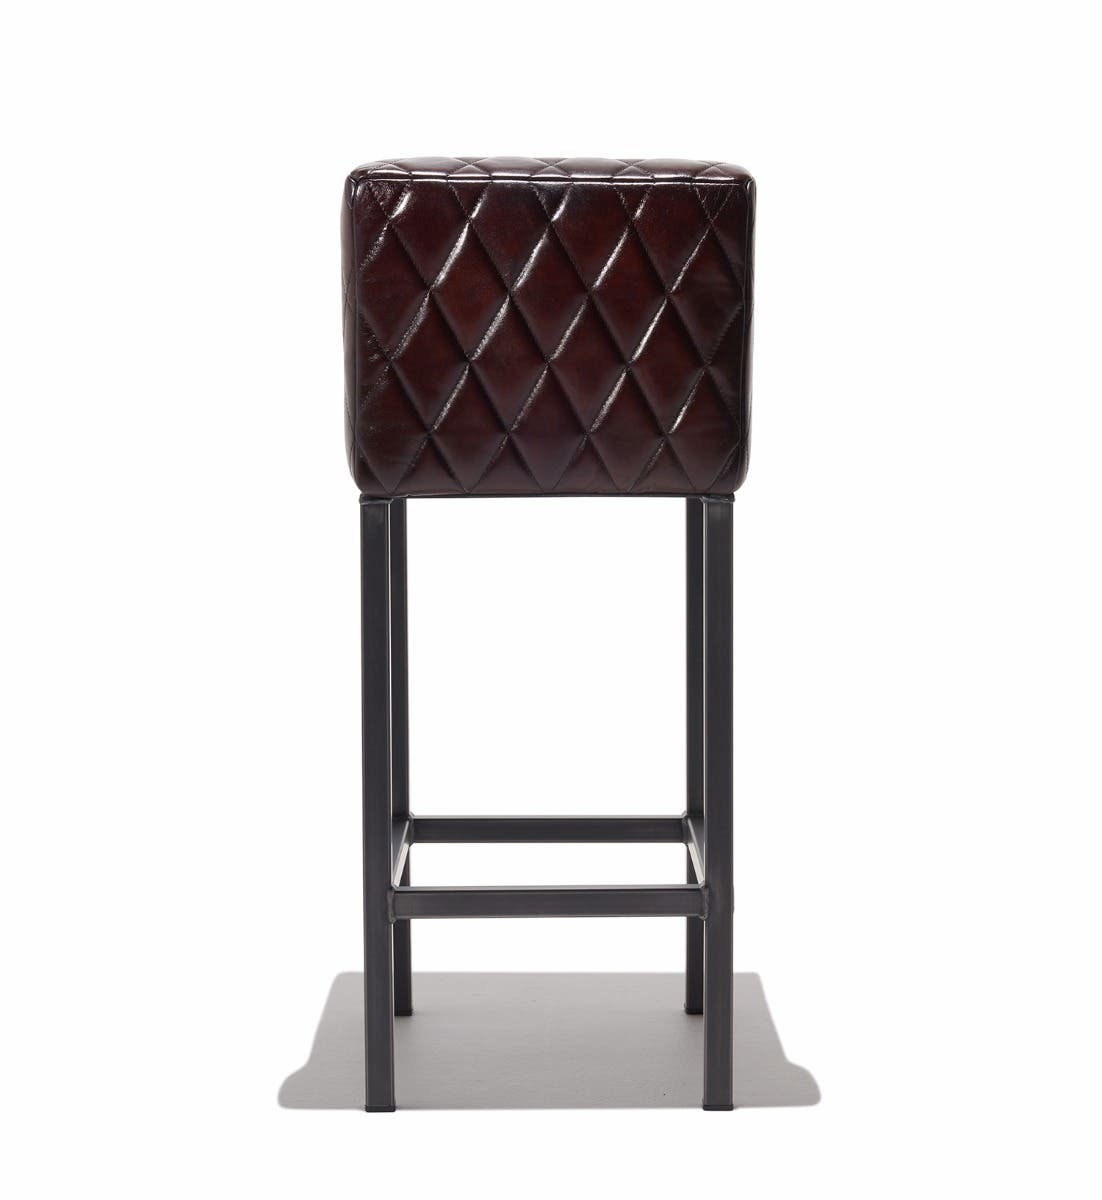 stools inch bar extra saddle palazzo stool product cfm hayneedle tall brown rectangle